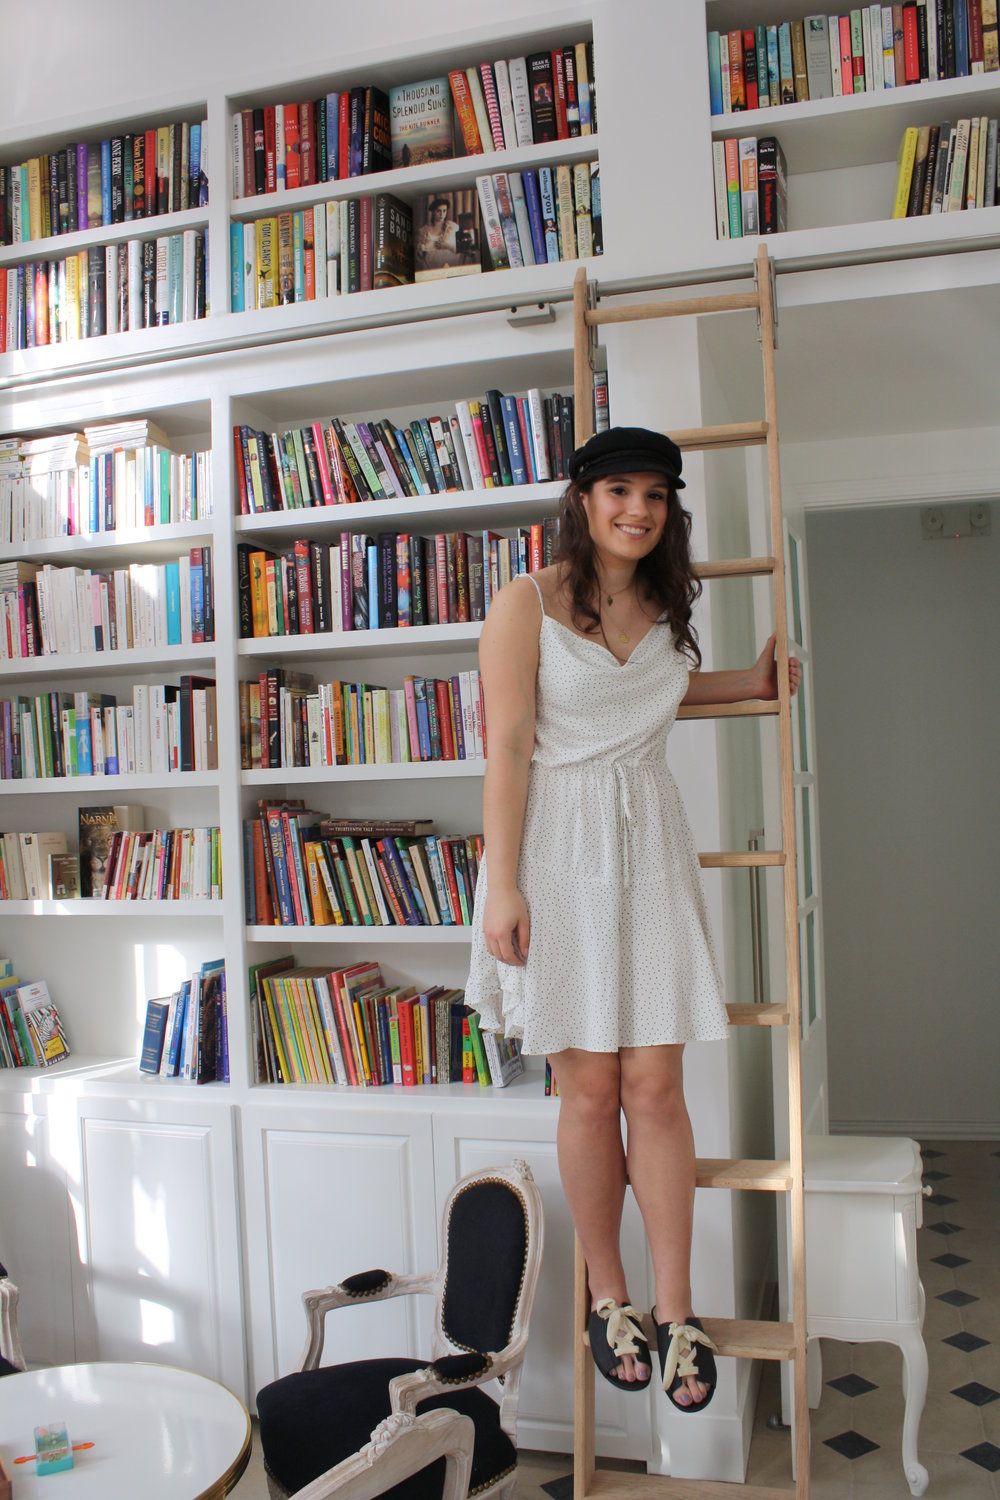 Hat: Brixton; Sunglasses: Quay; Jewelry: Frasier Sterling and Child of Wild; Dress: MinkPink; Shoes: Matisse